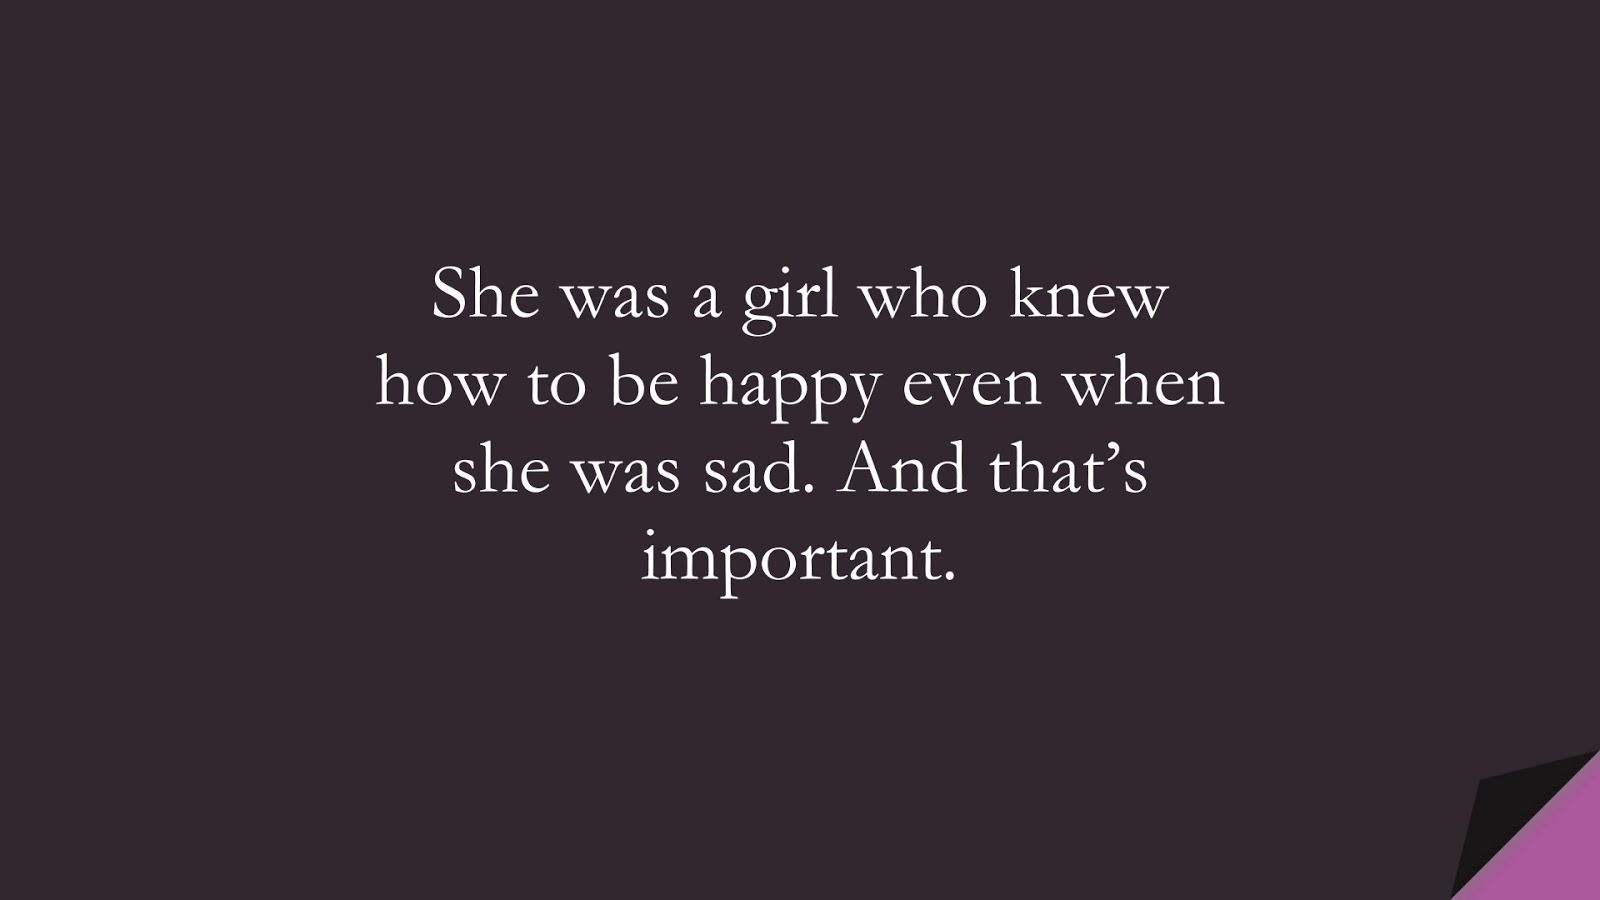 She was a girl who knew how to be happy even when she was sad. And that's important.FALSE